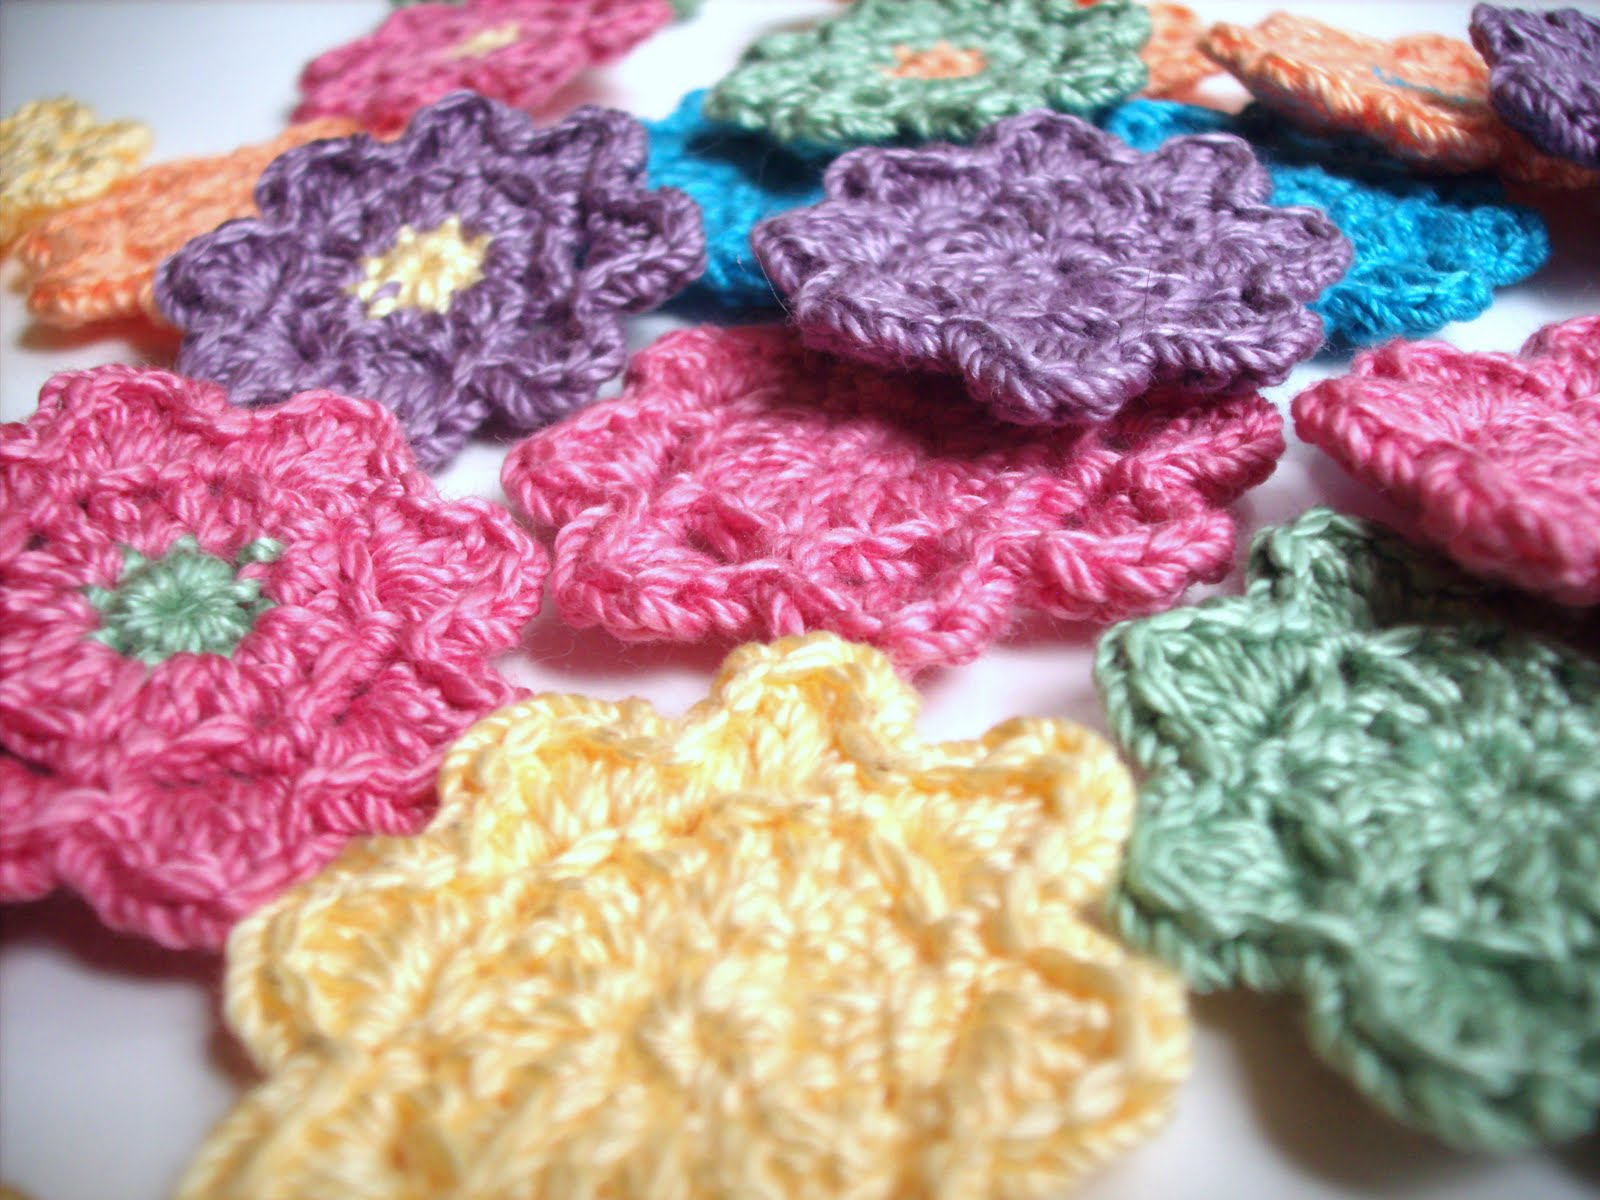 Crochet flower patterns - Squidoo : Welcome to Squidoo